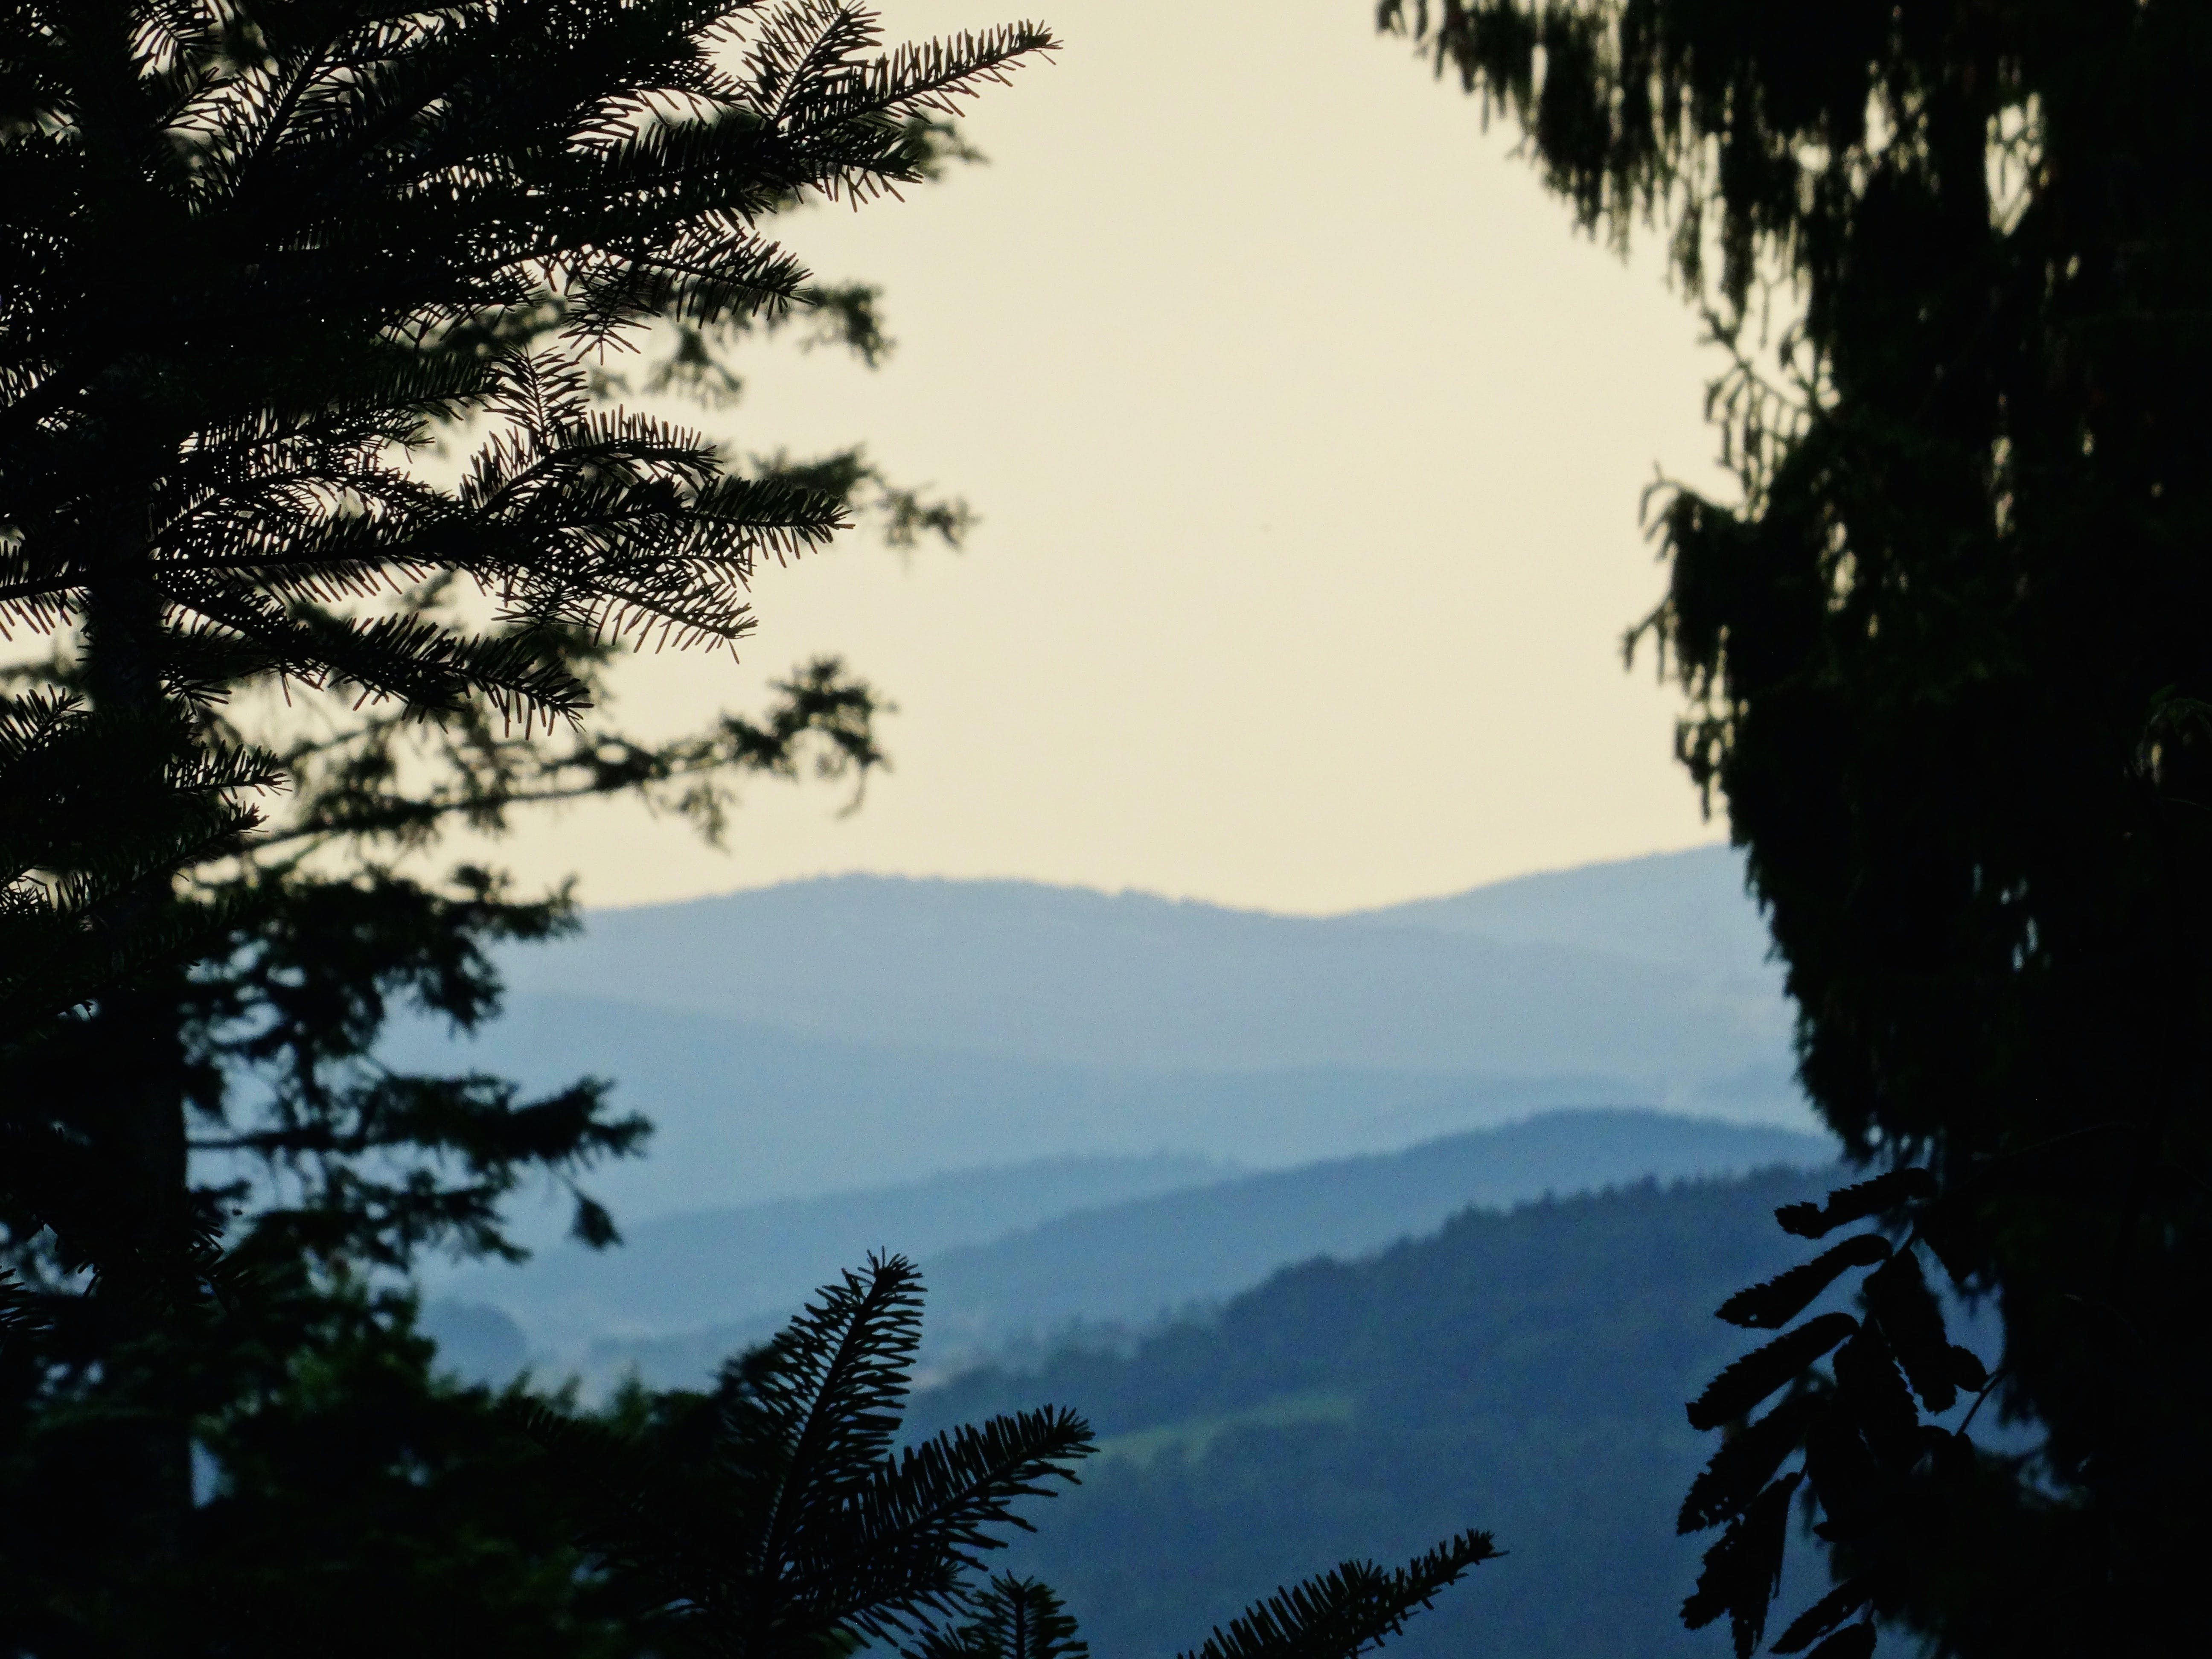 Silhouette of Trees With Mountain on Distant